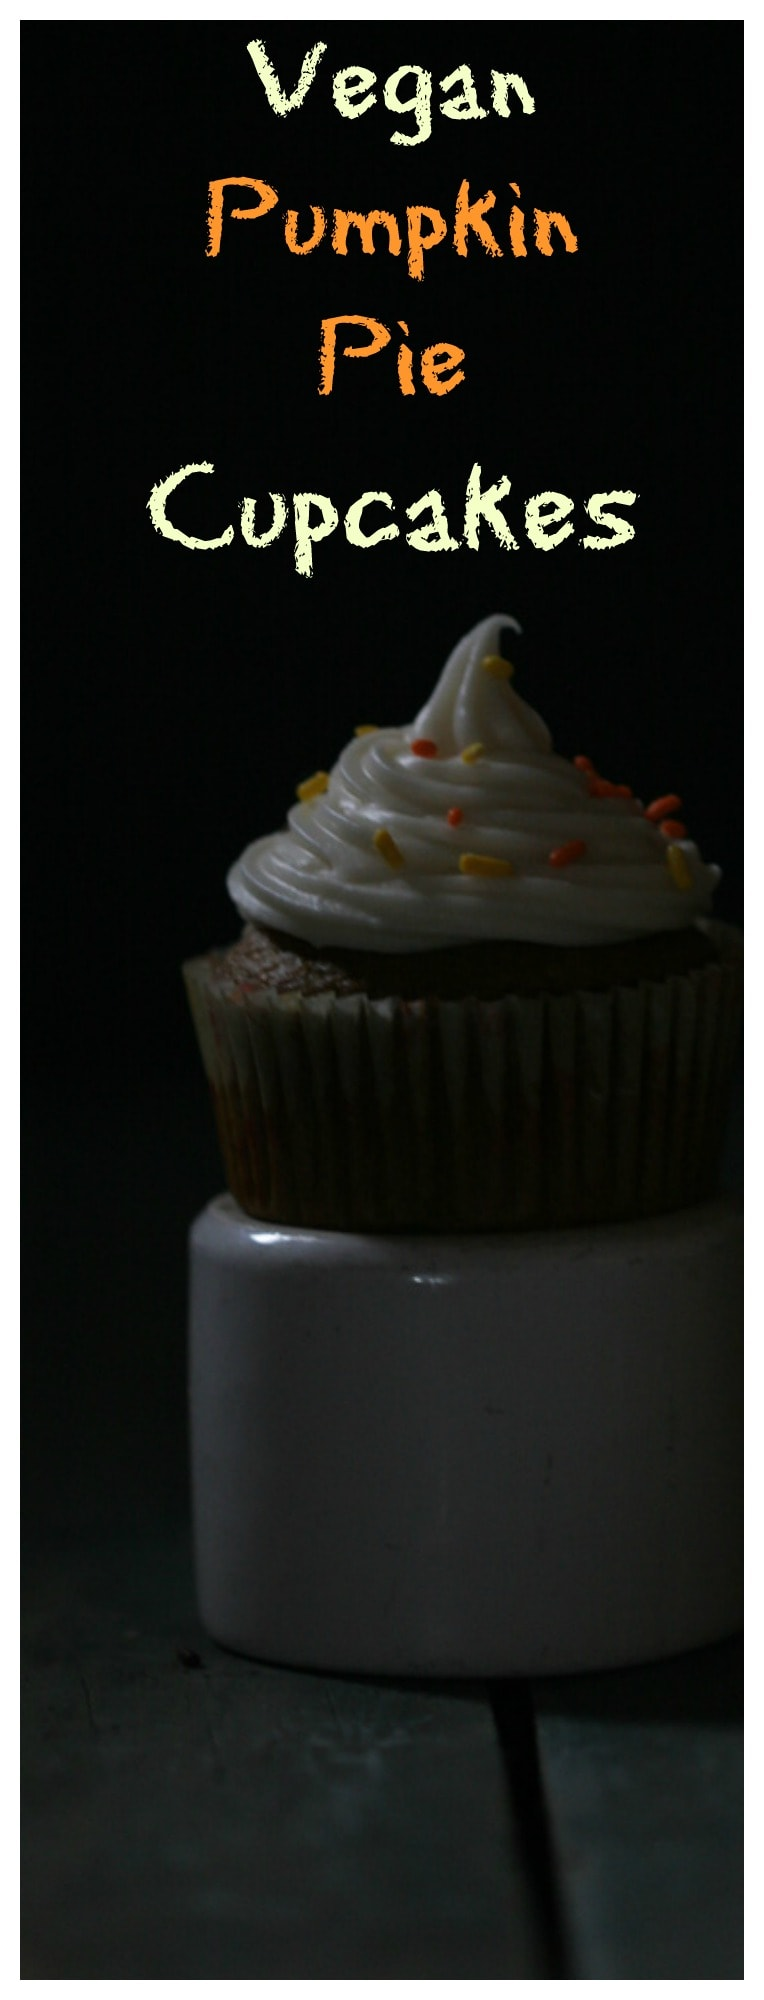 a dark picture of a cupcake with frosting and sprinkles